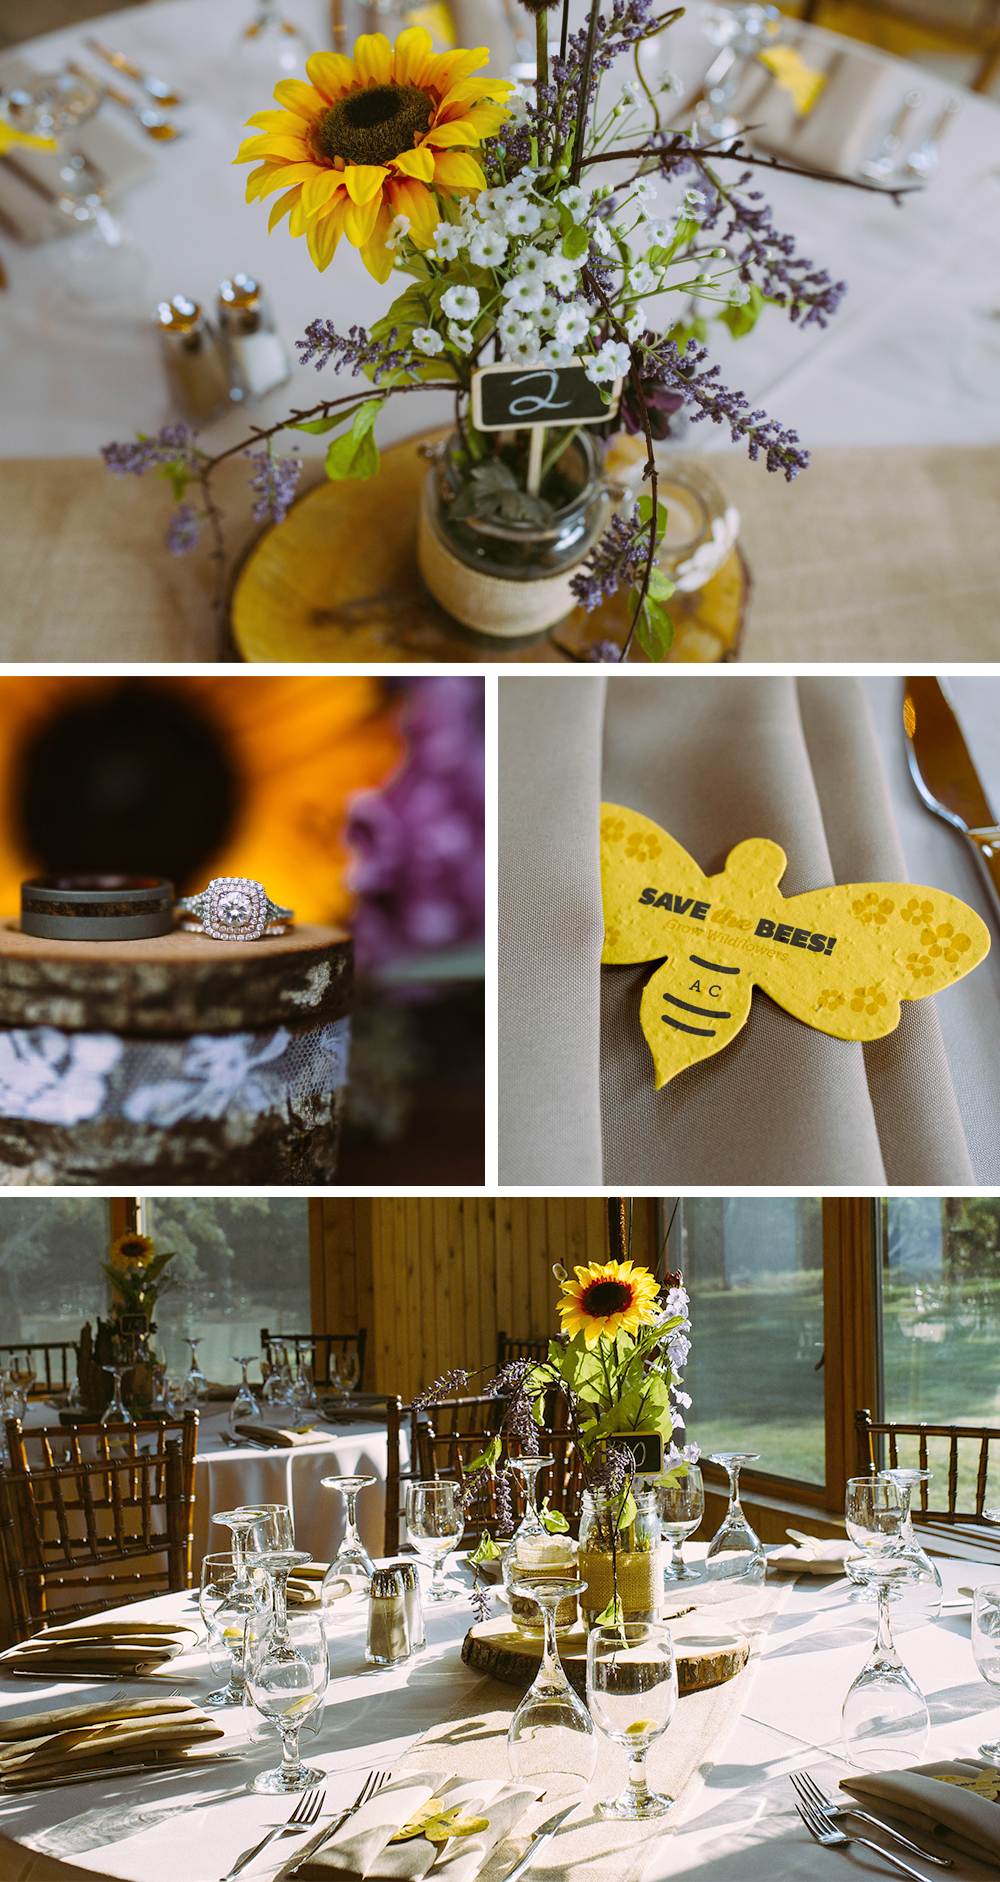 seed paper featured in wedding decor